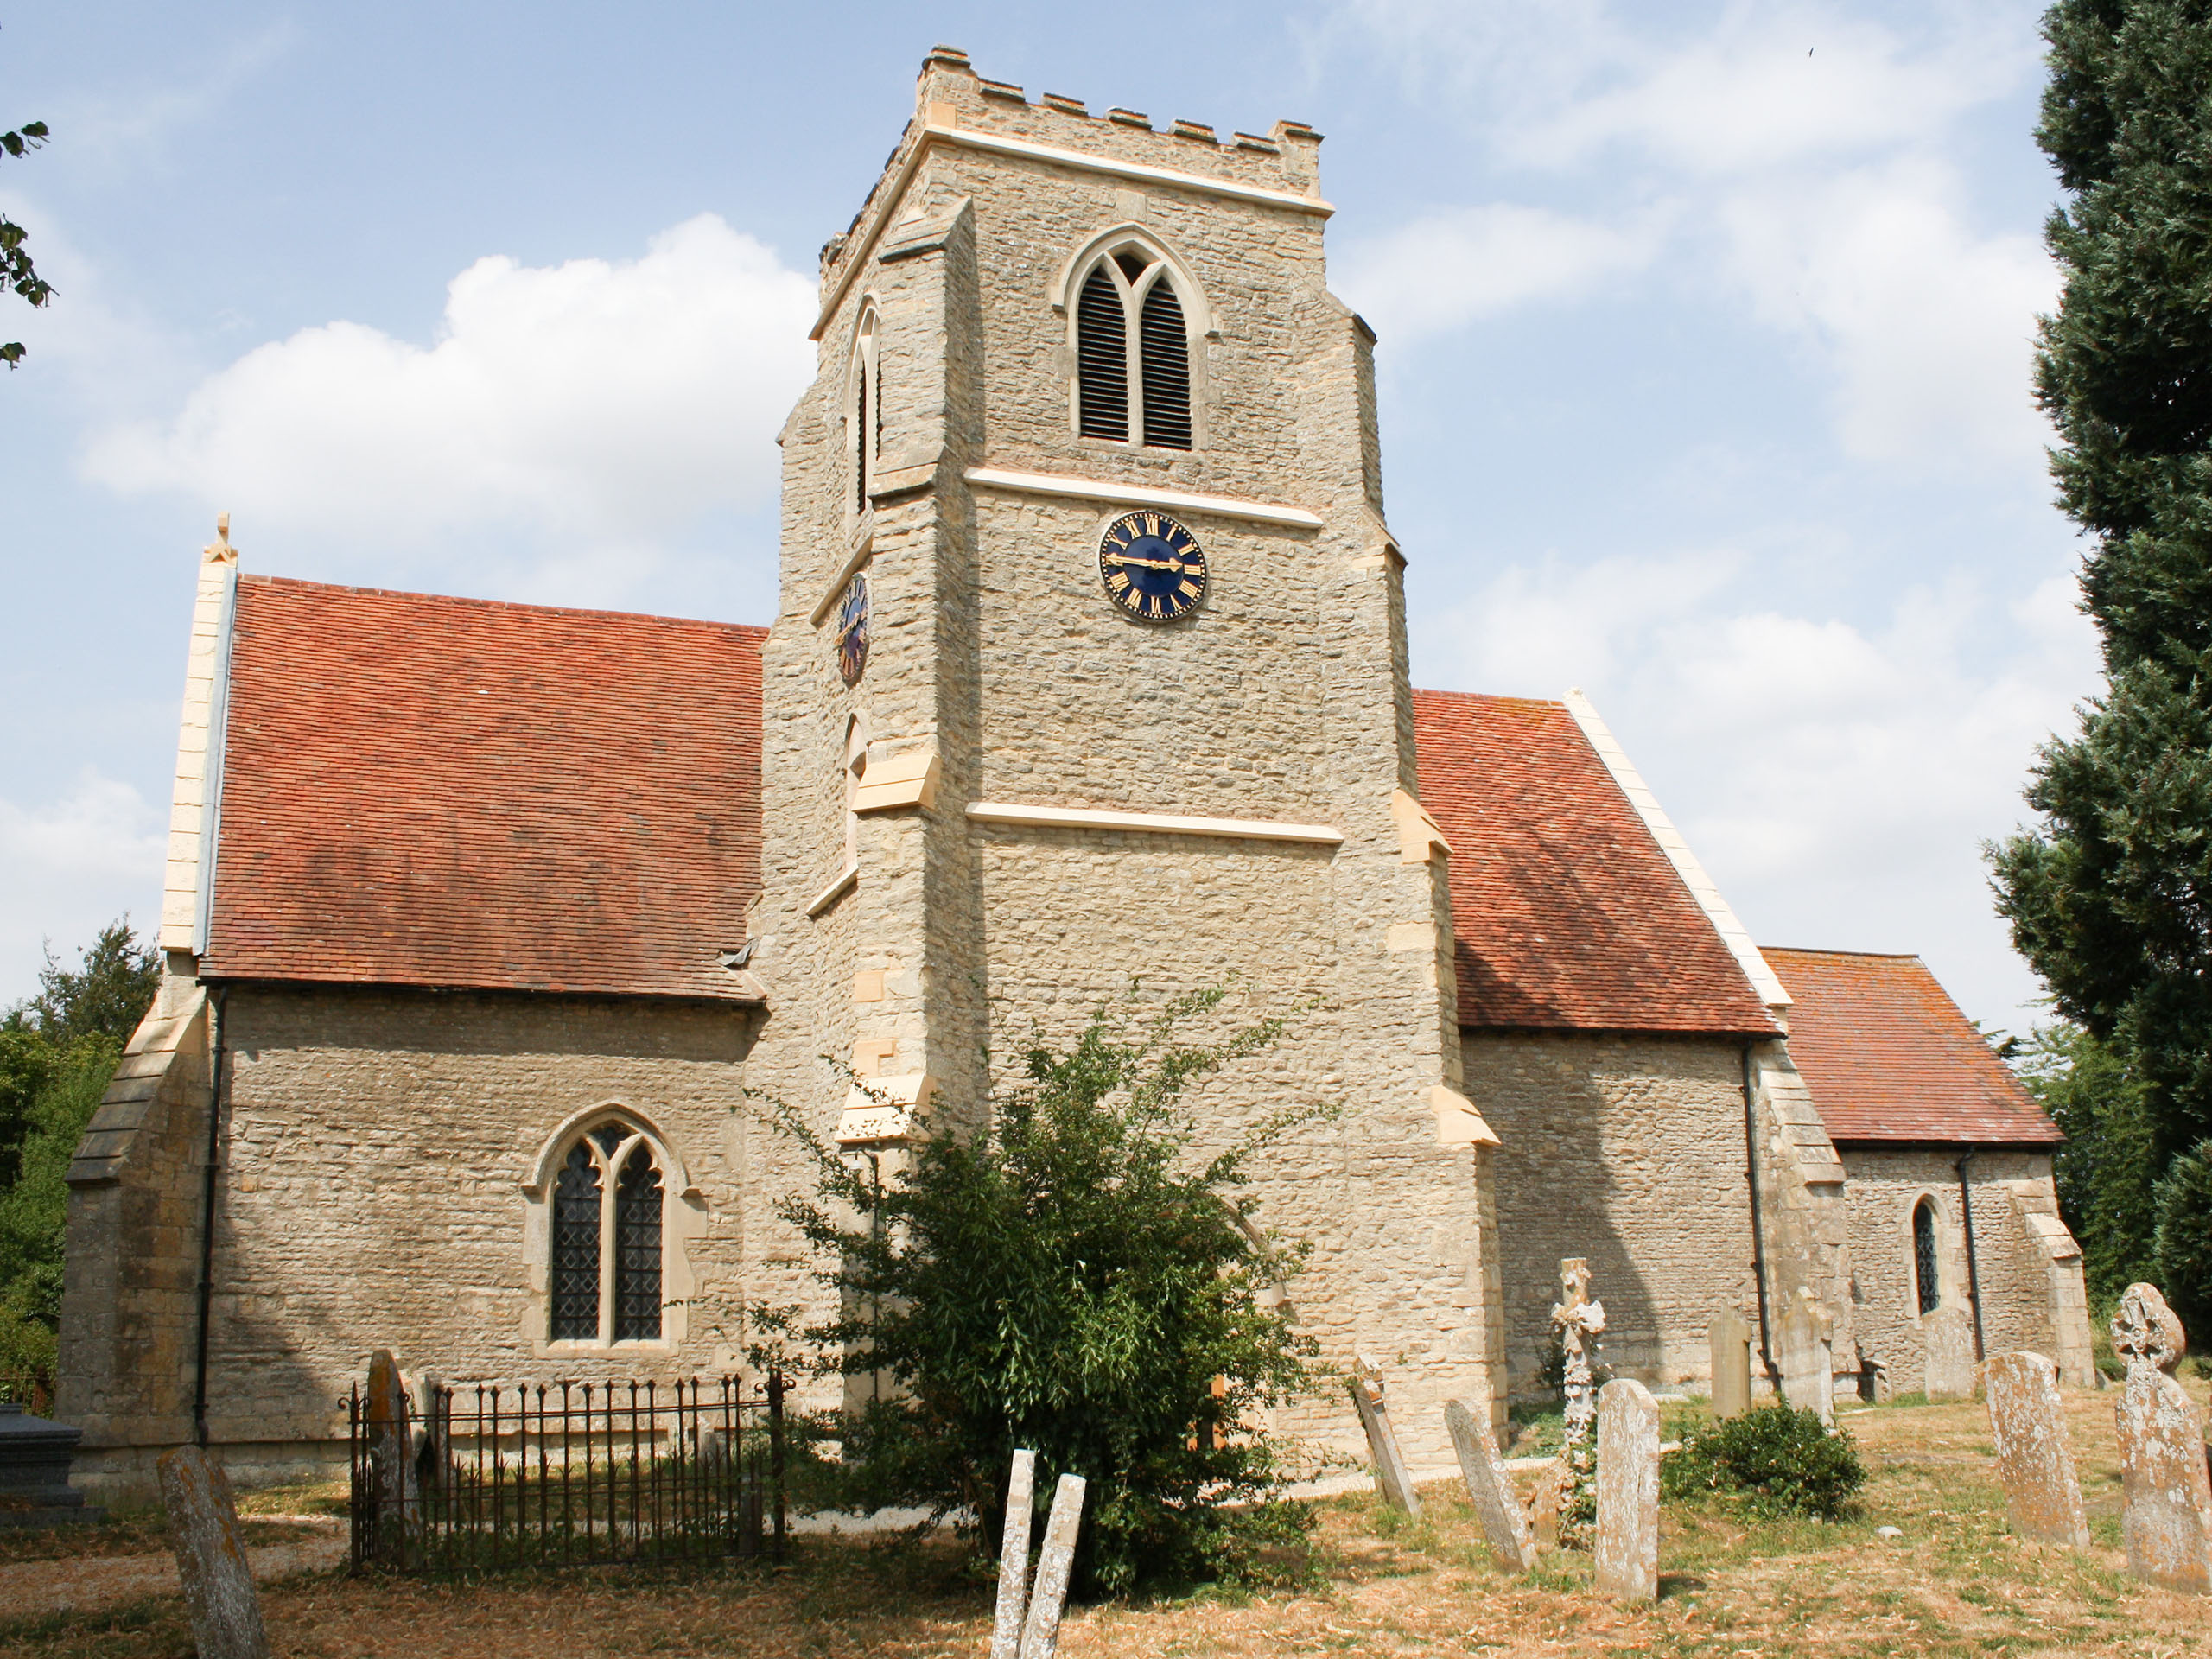 St Catherine's Church, Towersey, Oxfordshire Image 10